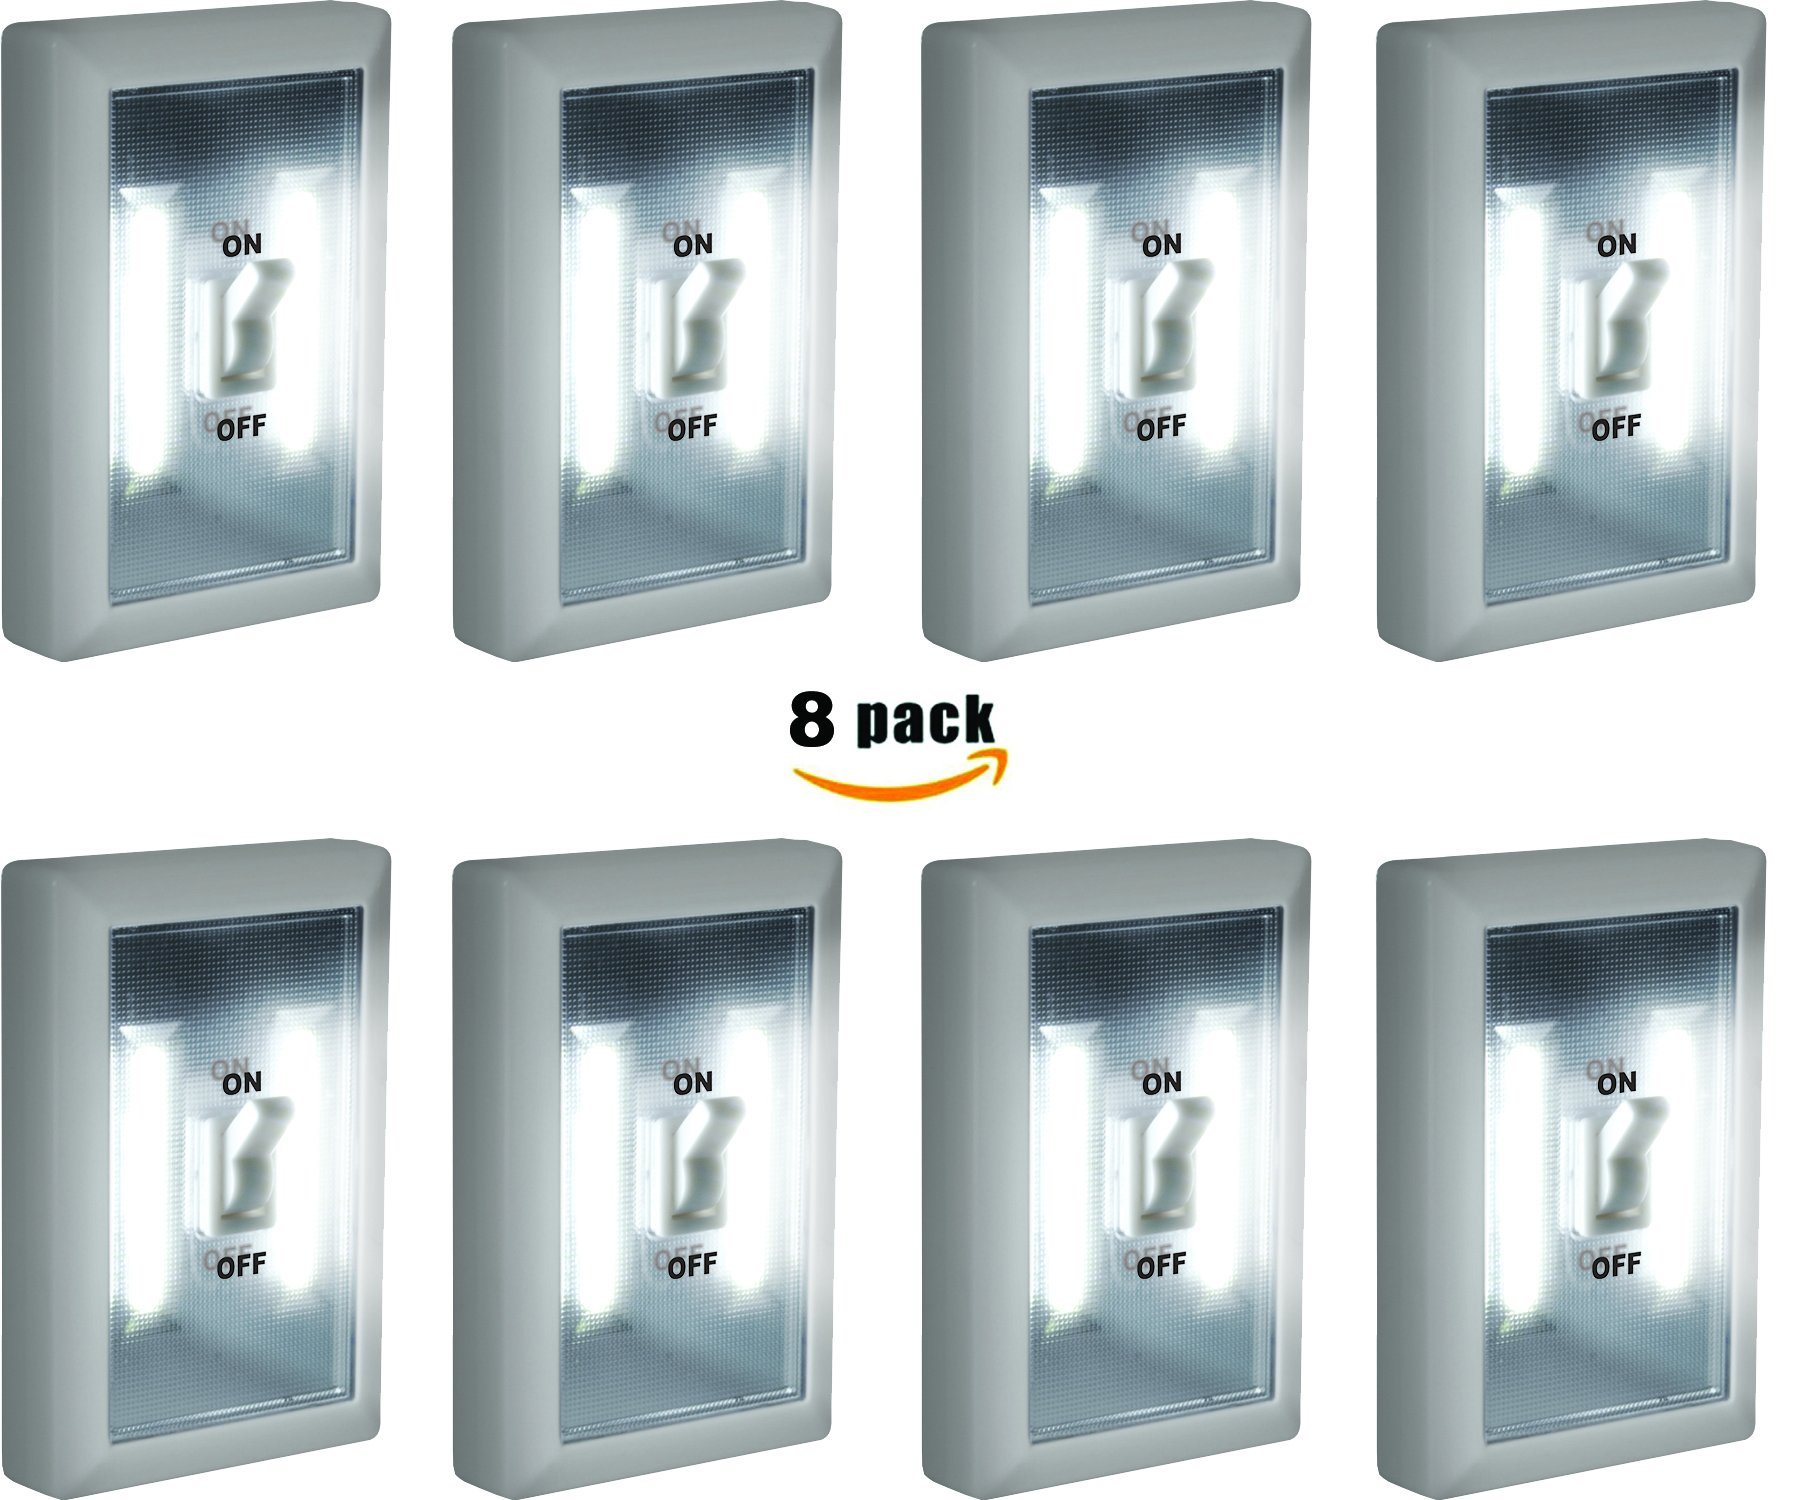 8-Pack - Super Bright Switch: Wireless Peel and Stick LED Lights - Tap Light, Touch, Night, Utility, Battery Operated, Under Cabinet, Shed, Kitchen, Garage, Basement